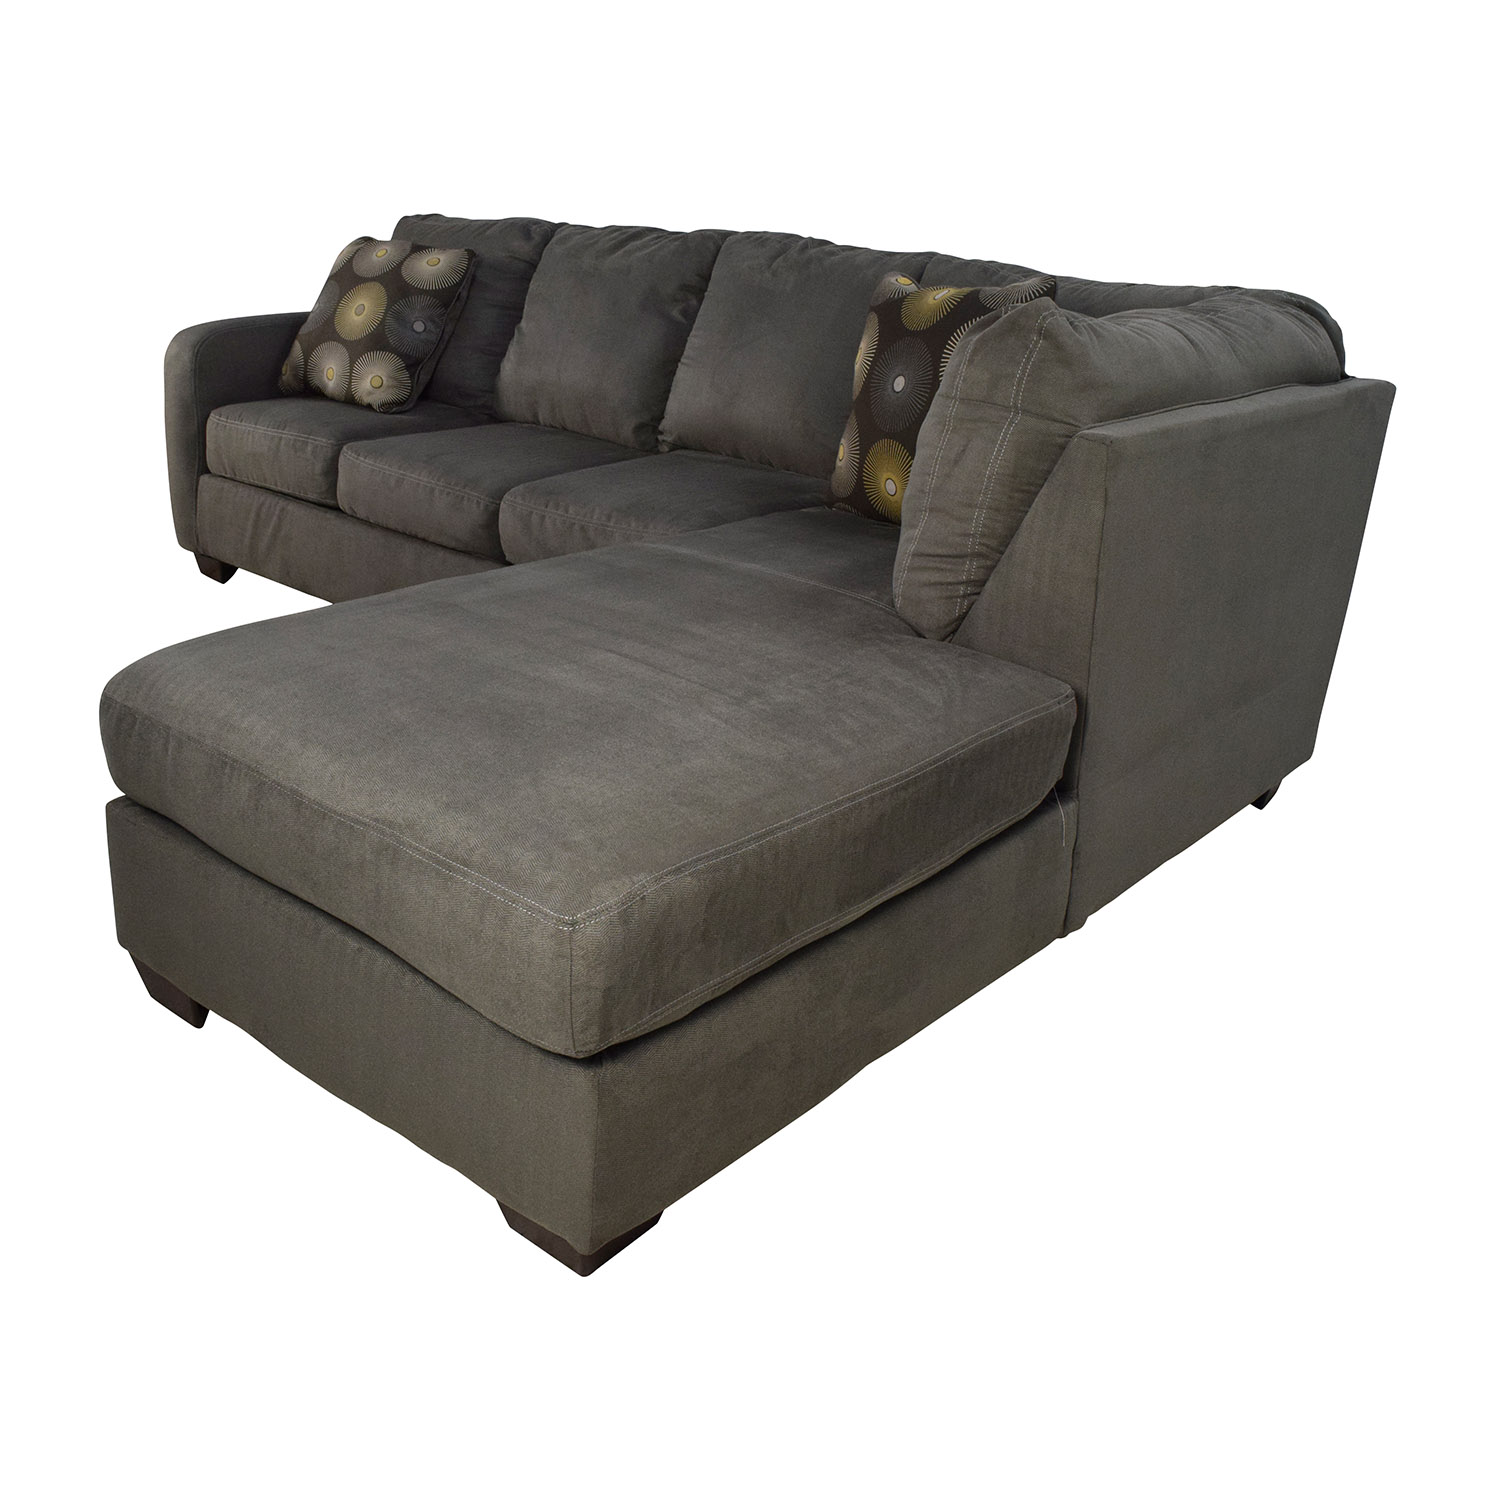 Sectional Bed Sofa 30 Off Ashley Furniture Ashley Furniture Waverly Gray Sectional Sofa Sofas